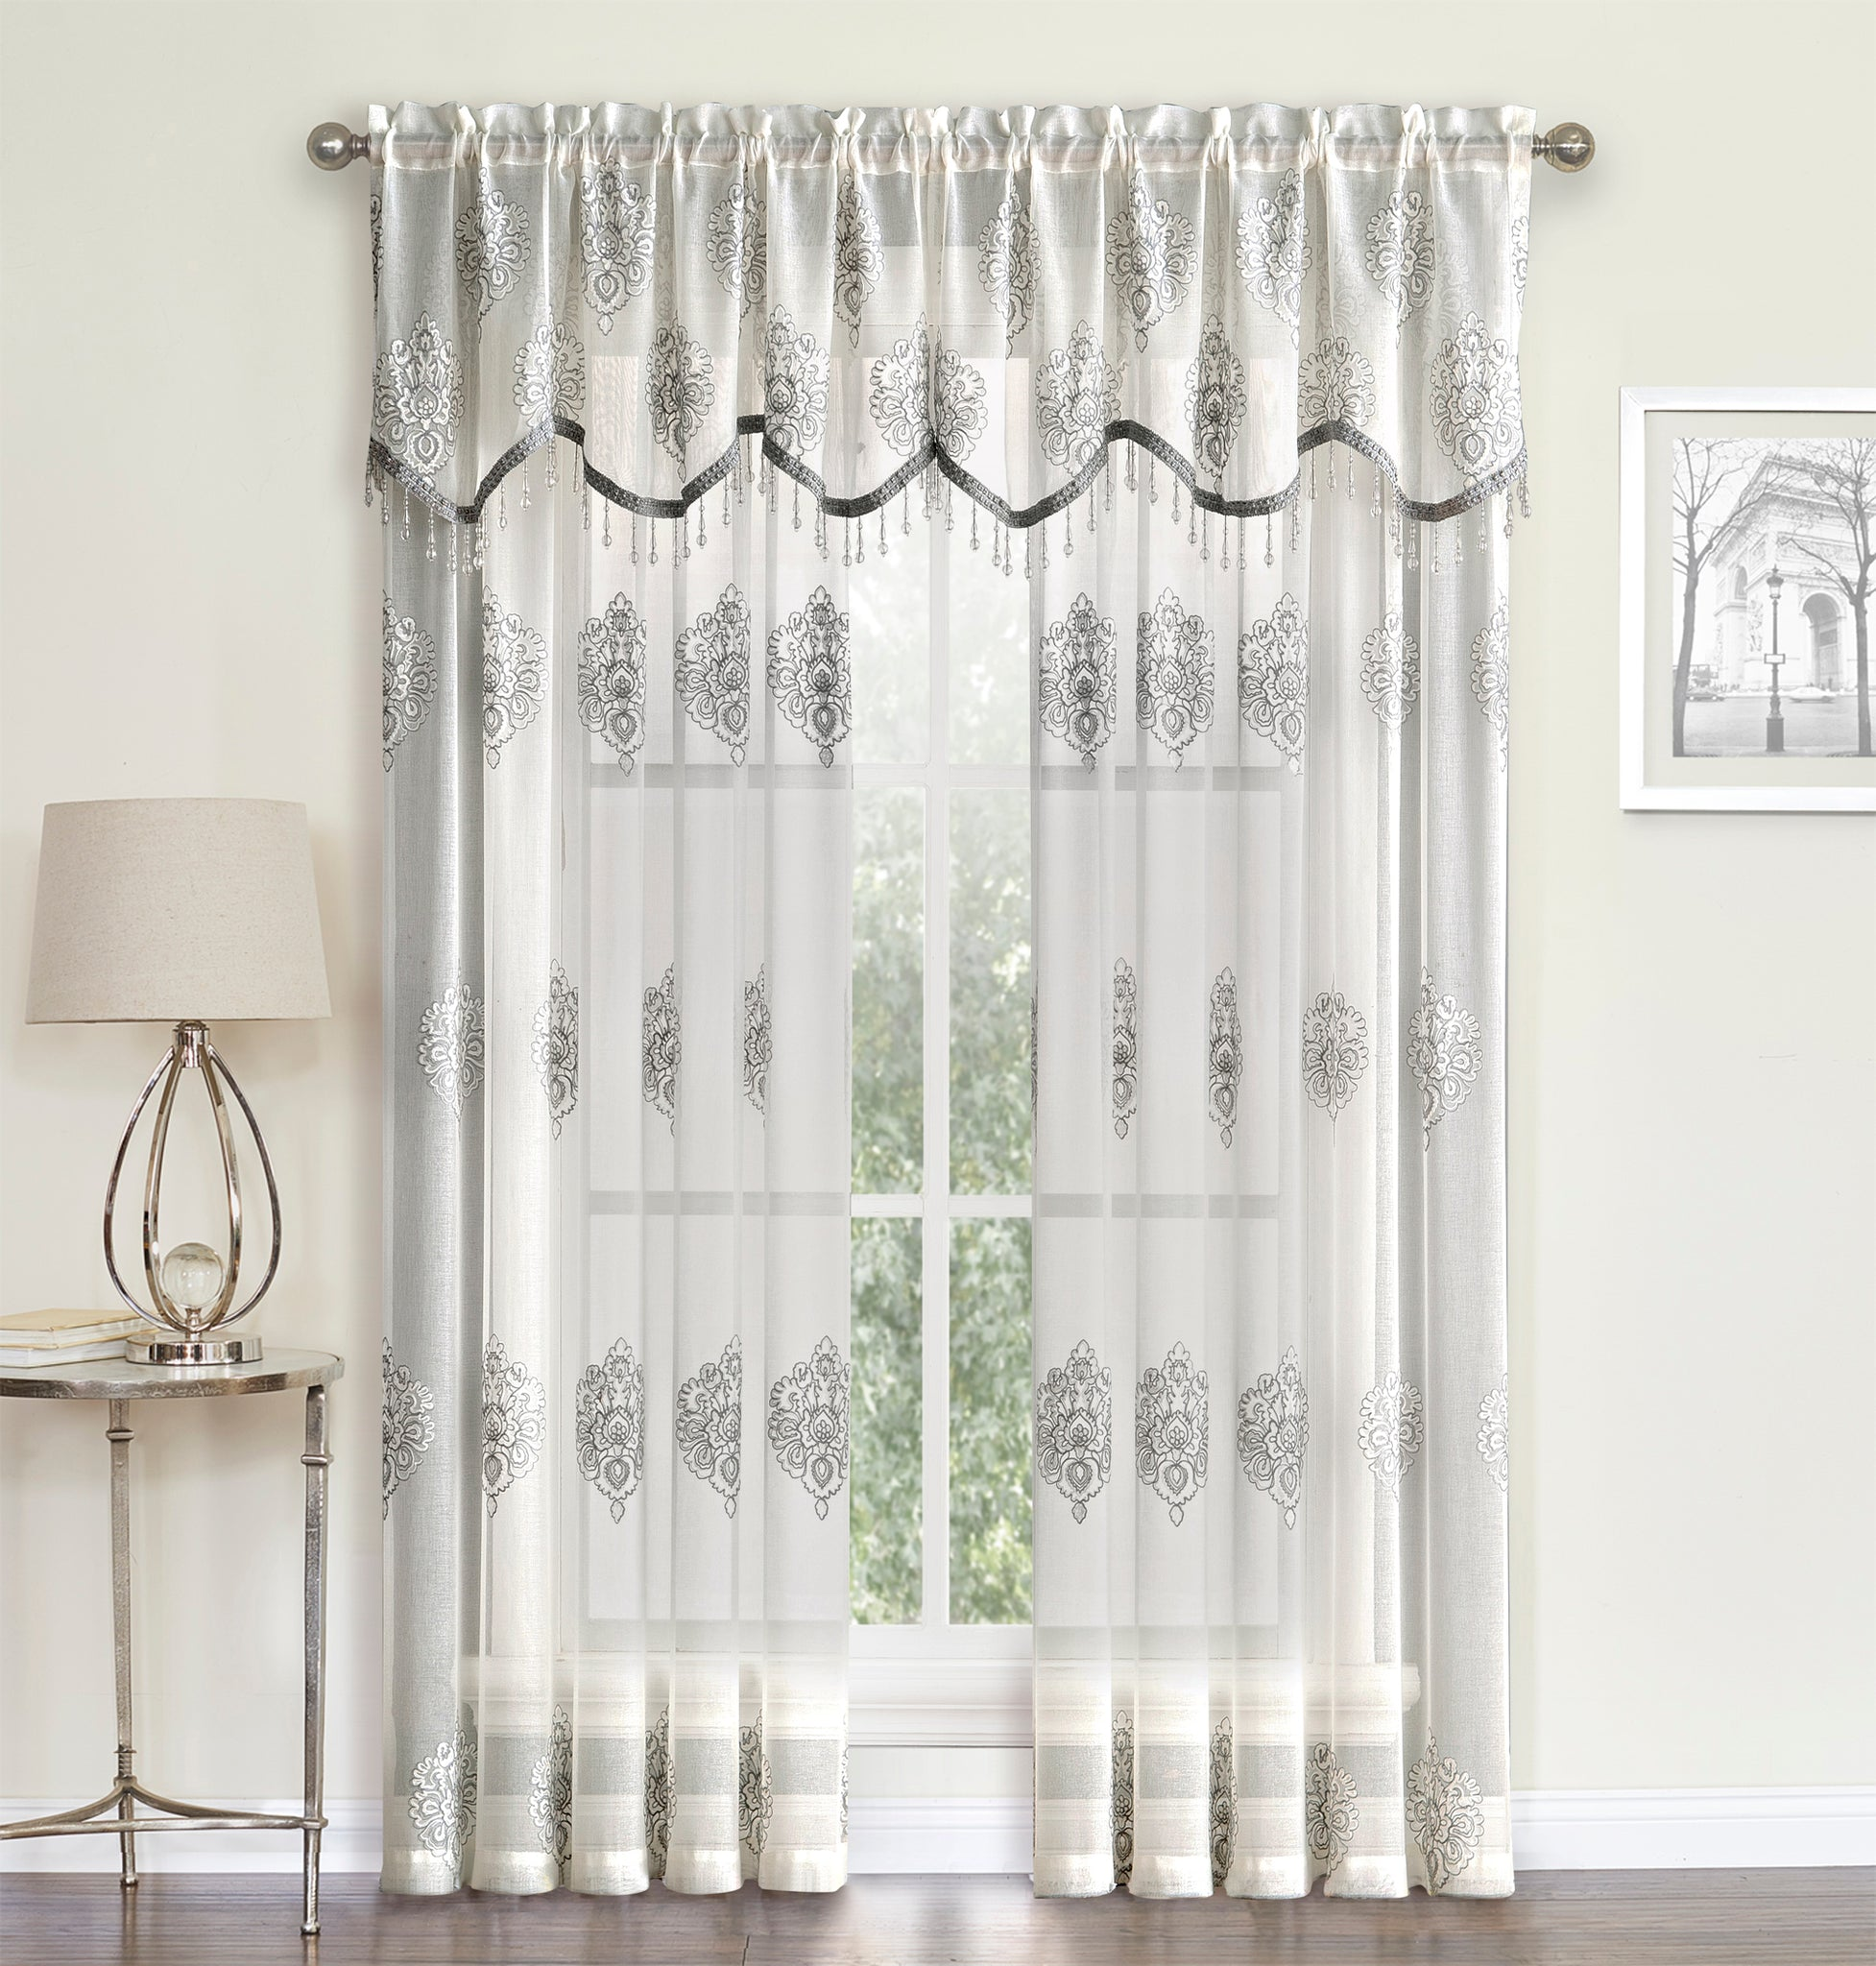 Helena Panel Rod Pocket Semi-Sheer Panel/ Beaded Valance - Panel 052x084  Gray    C41052- Marburn Curtains